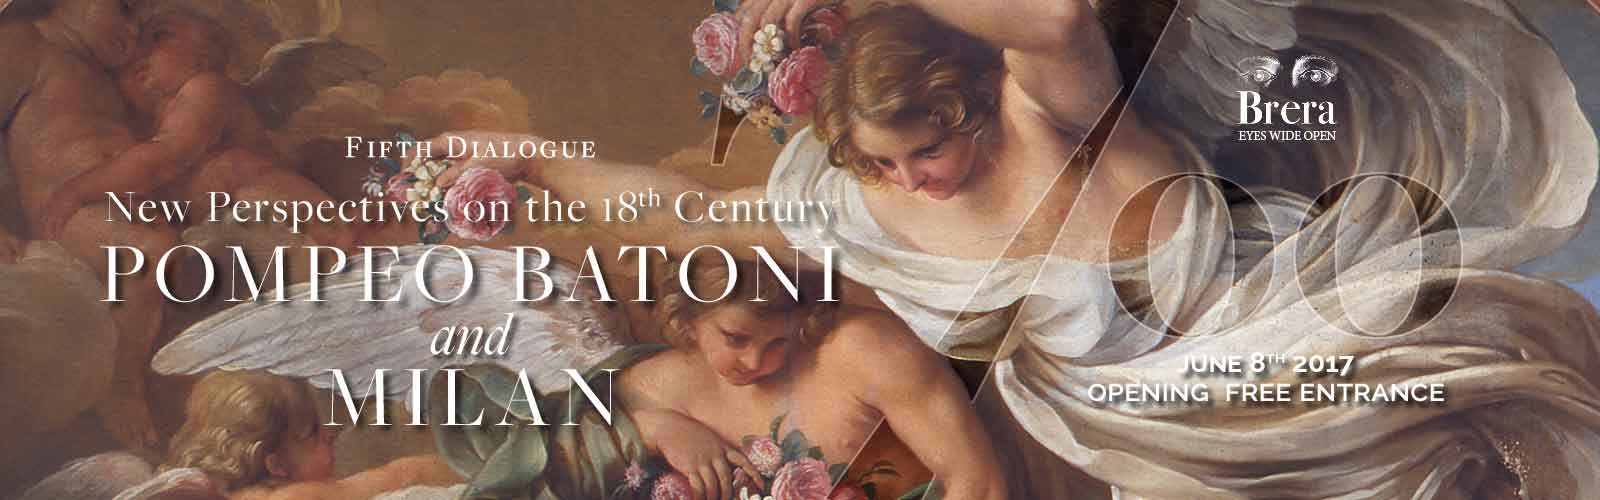 "Fifth Dialogue ""New Perspectives on the 18th Century. Pompeo Batoni and Milan"" 